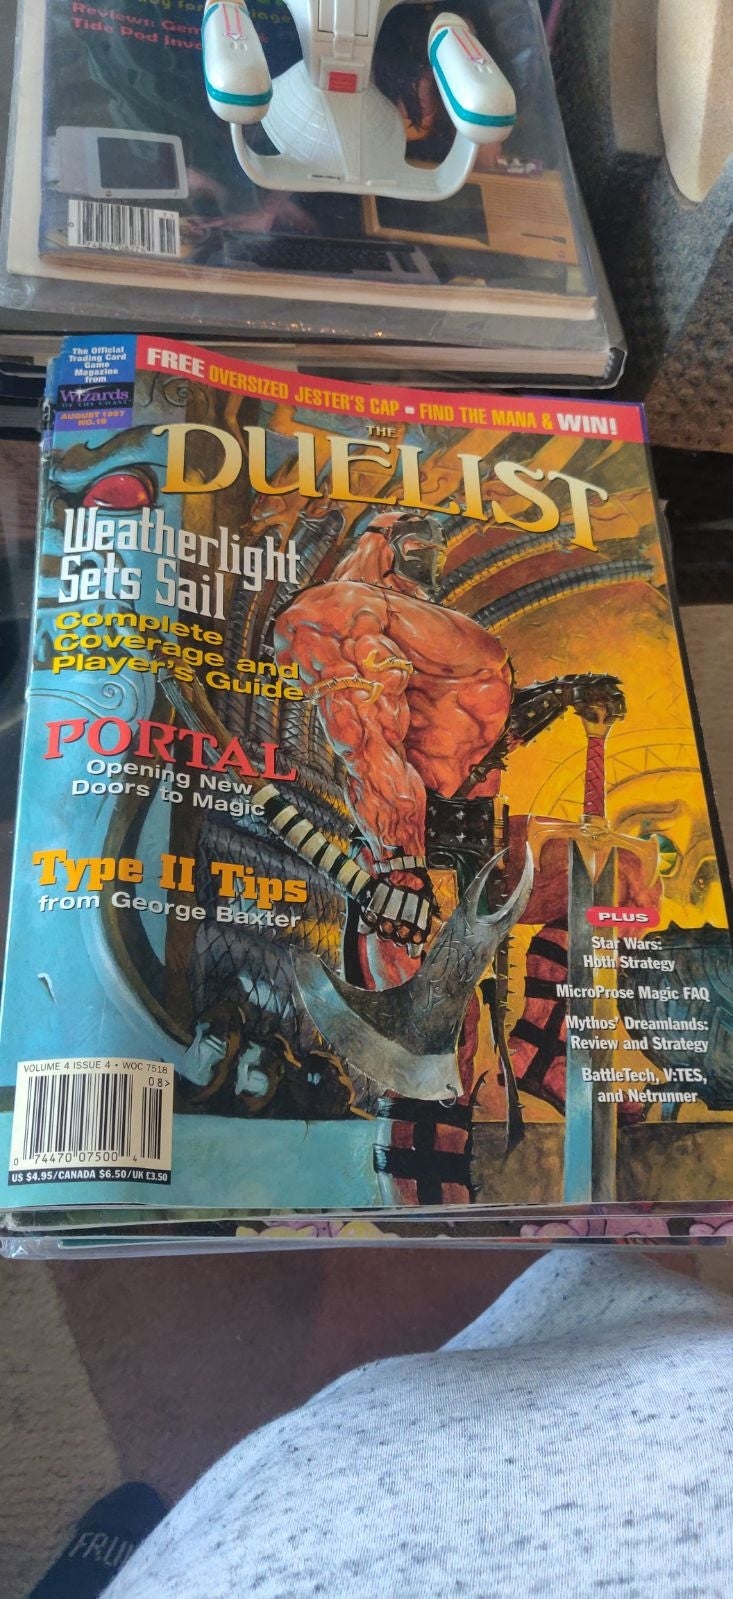 Duelist volume 4 issue 4